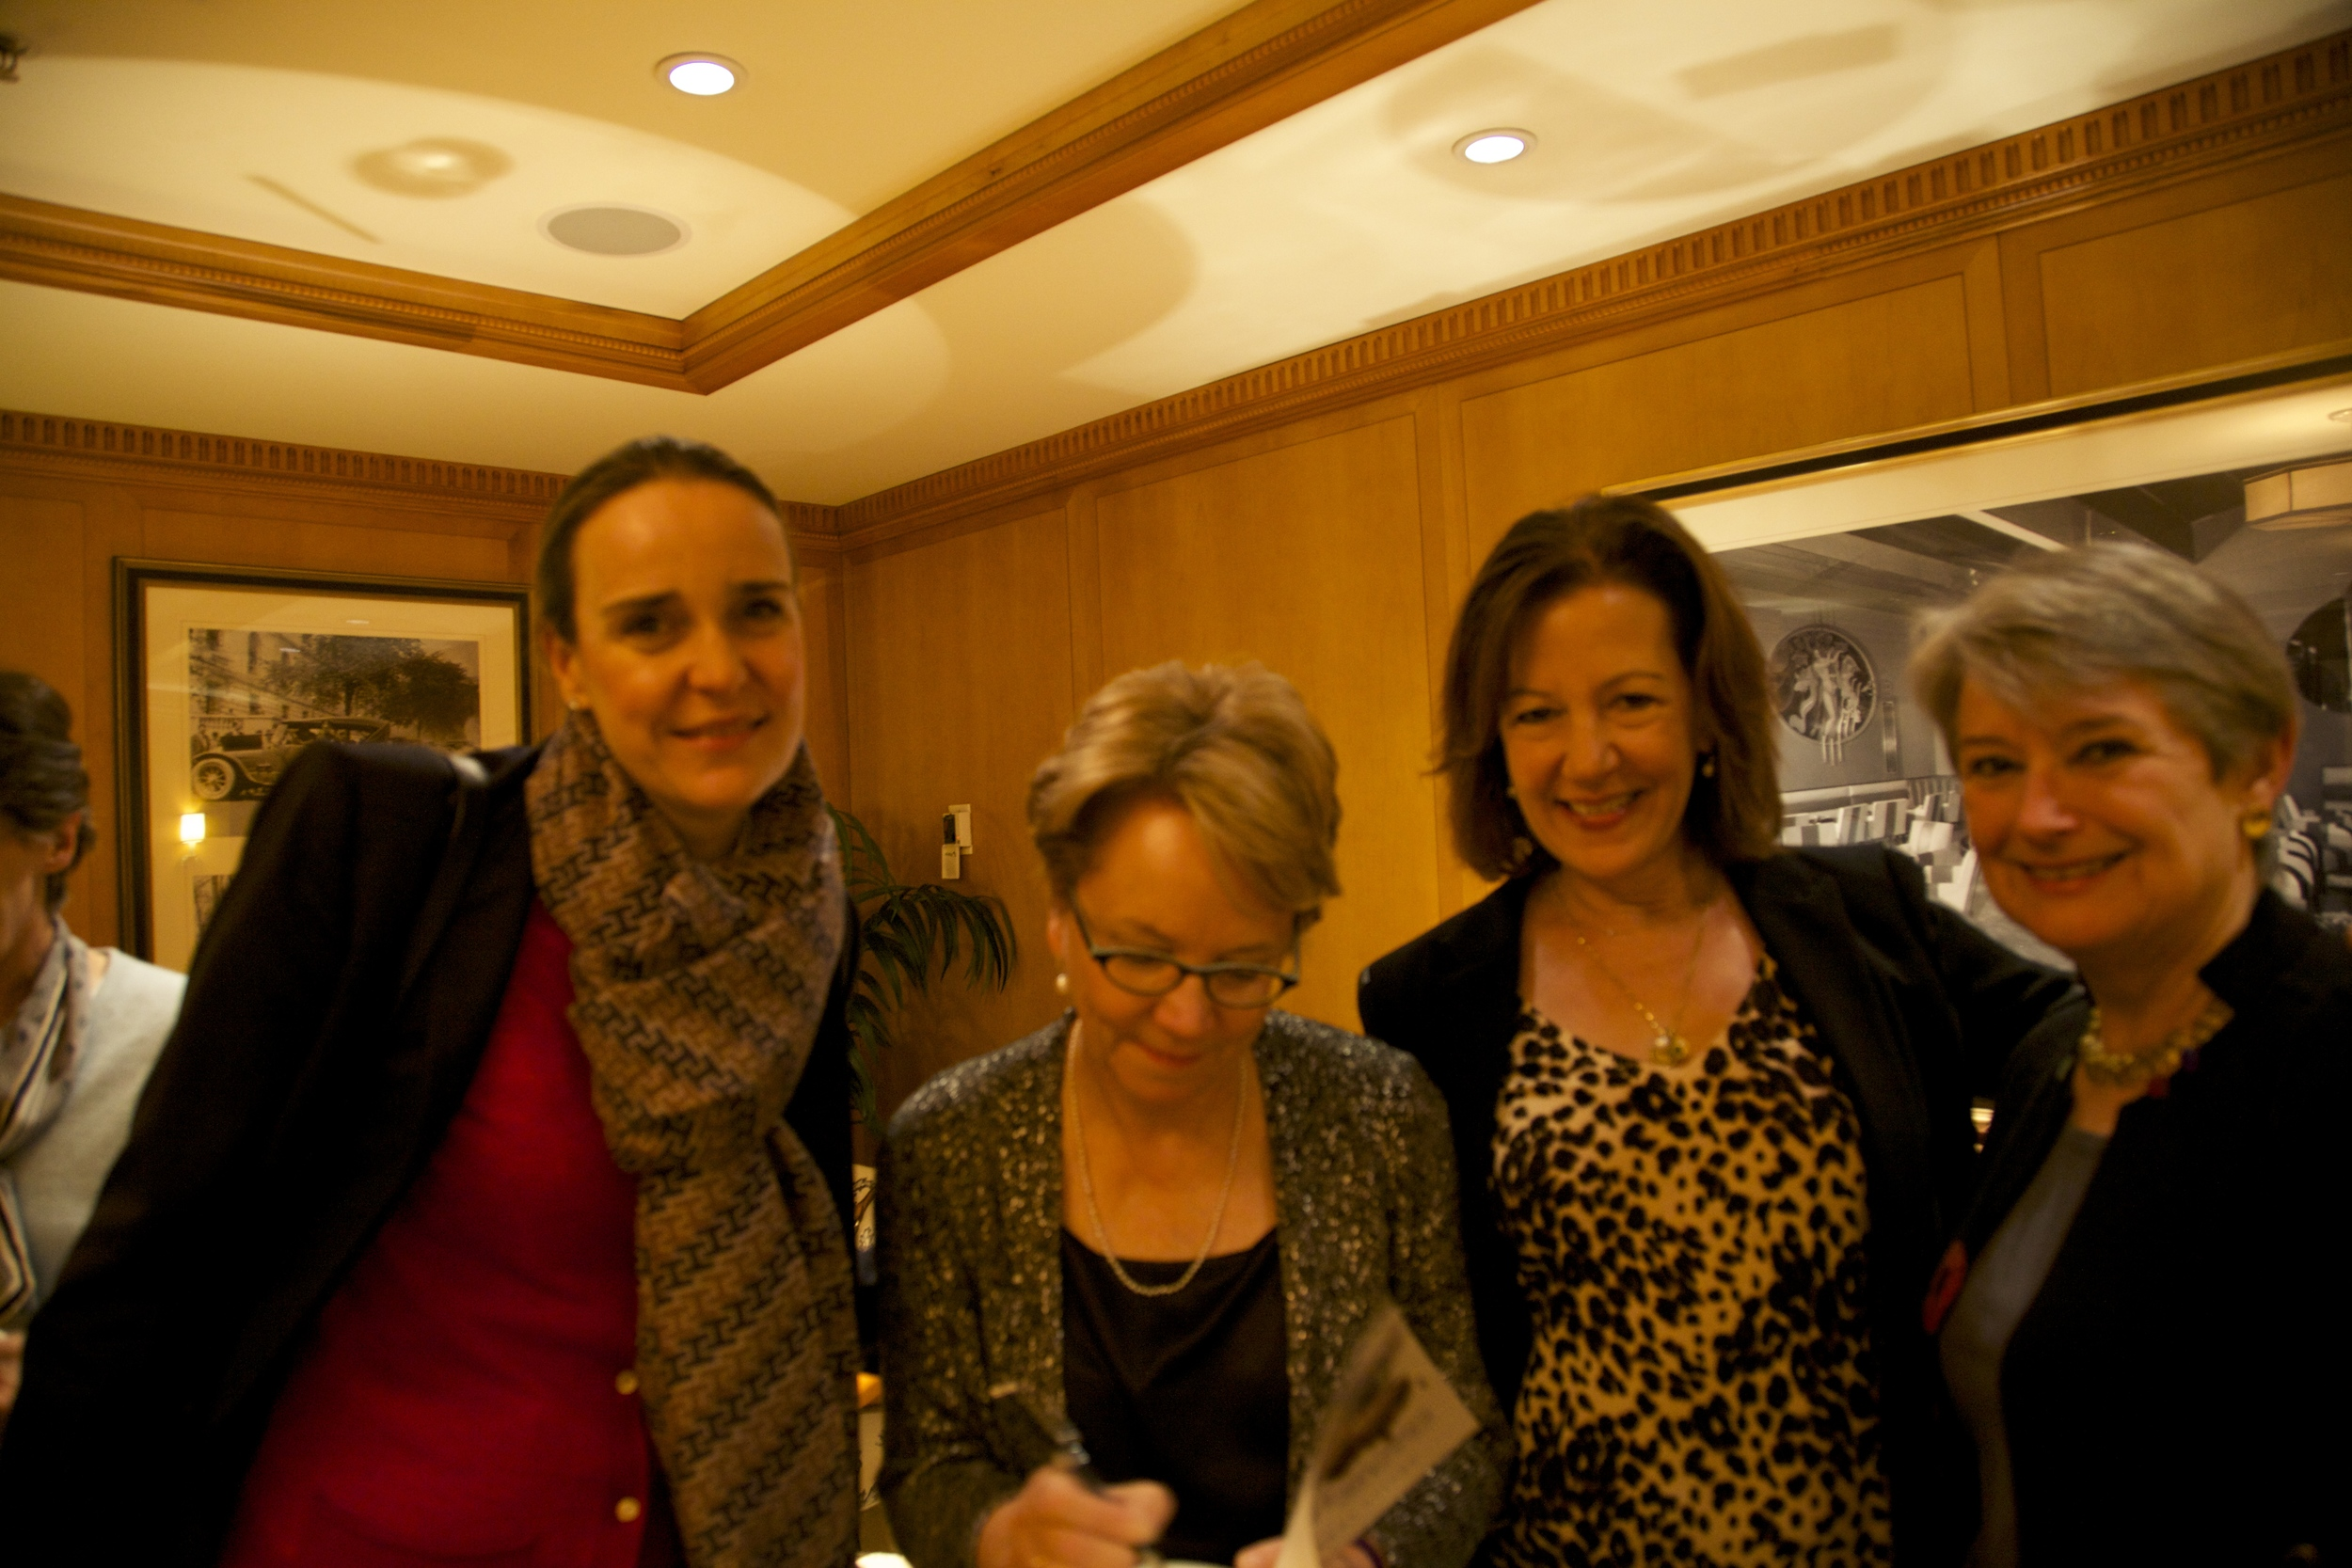 As well as Georgetown book group friends, Cecilie, Marianne and Andrea.